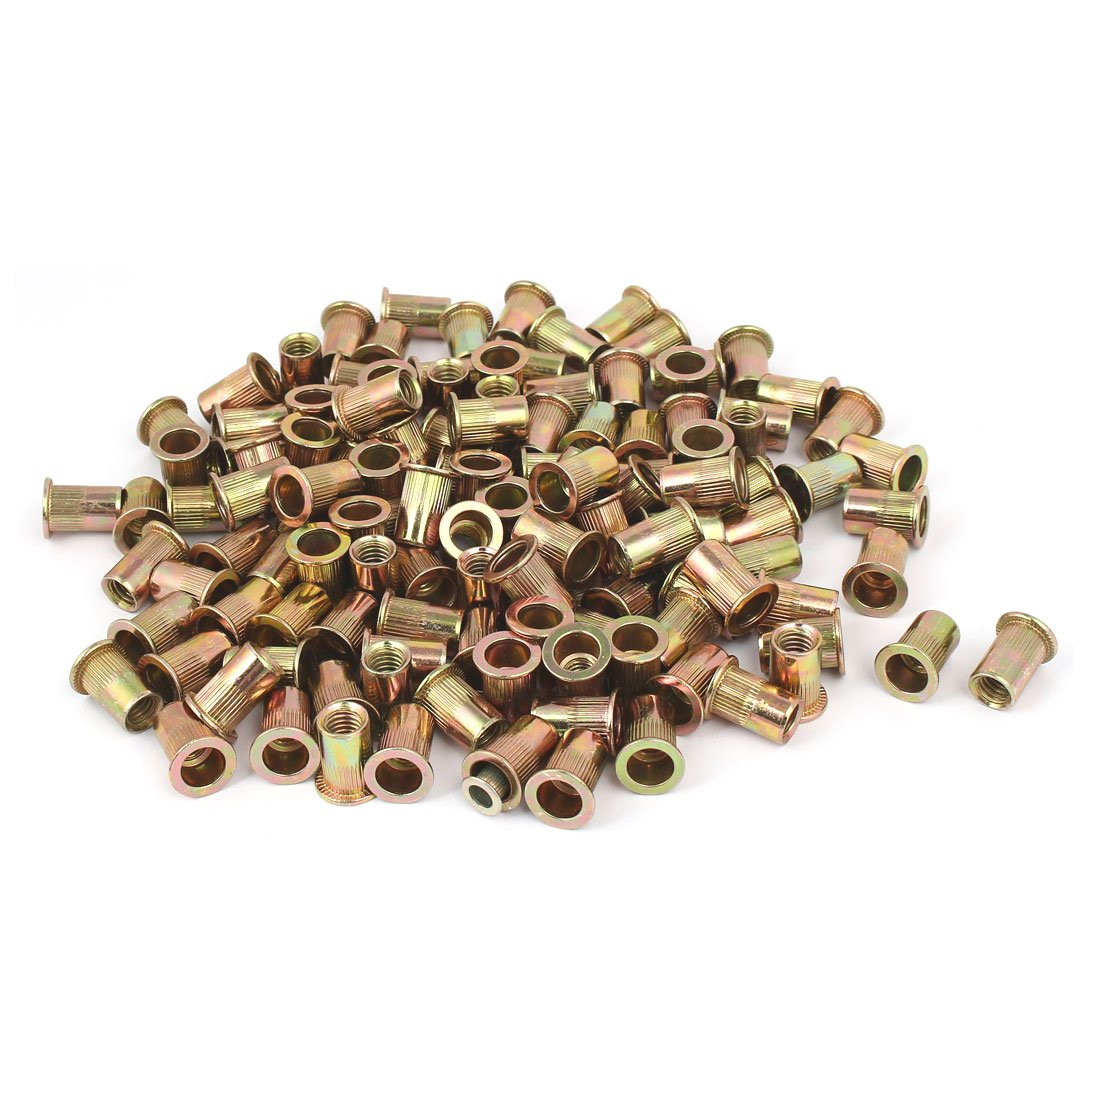 uxcell 5/16''-18 Straight Knurled Rivet Nut Insert Nutsert Bronze Tone 150pcs by uxcell